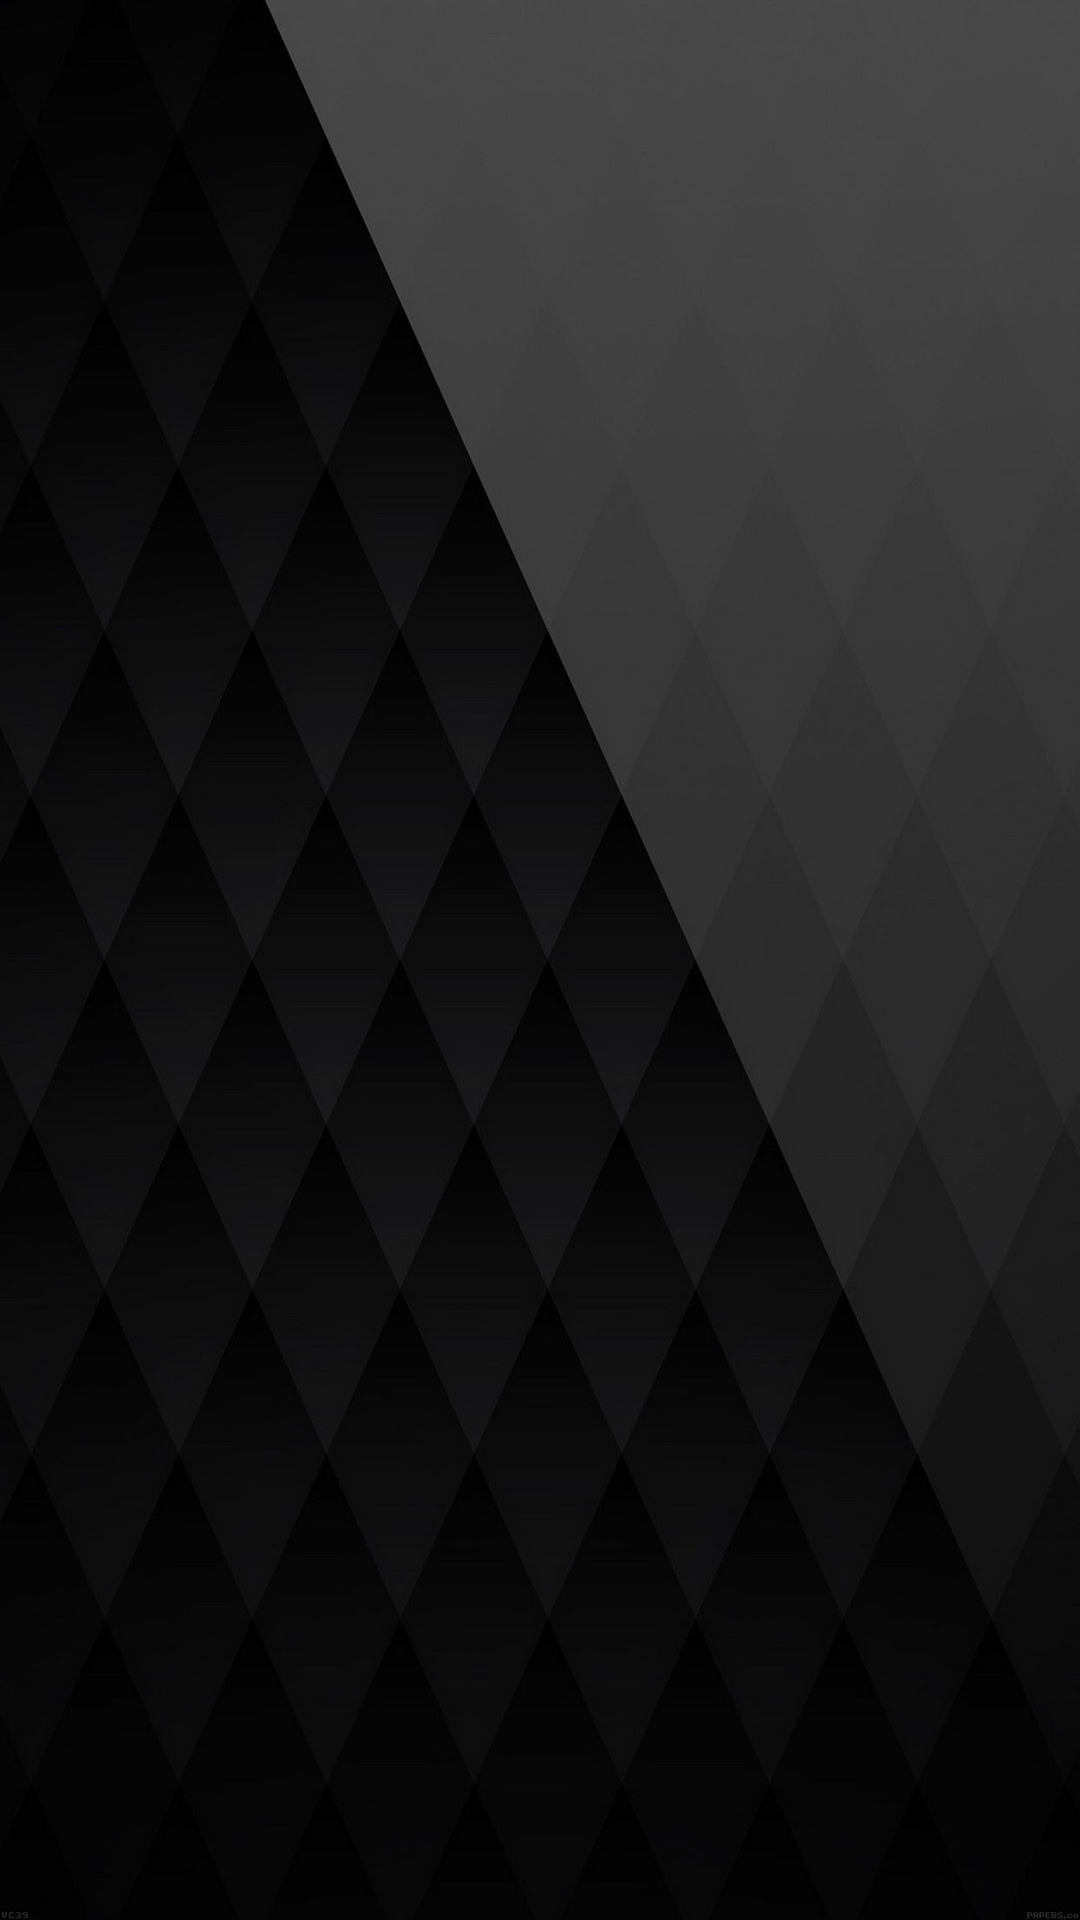 black pattern phone wallpaper - photo #15